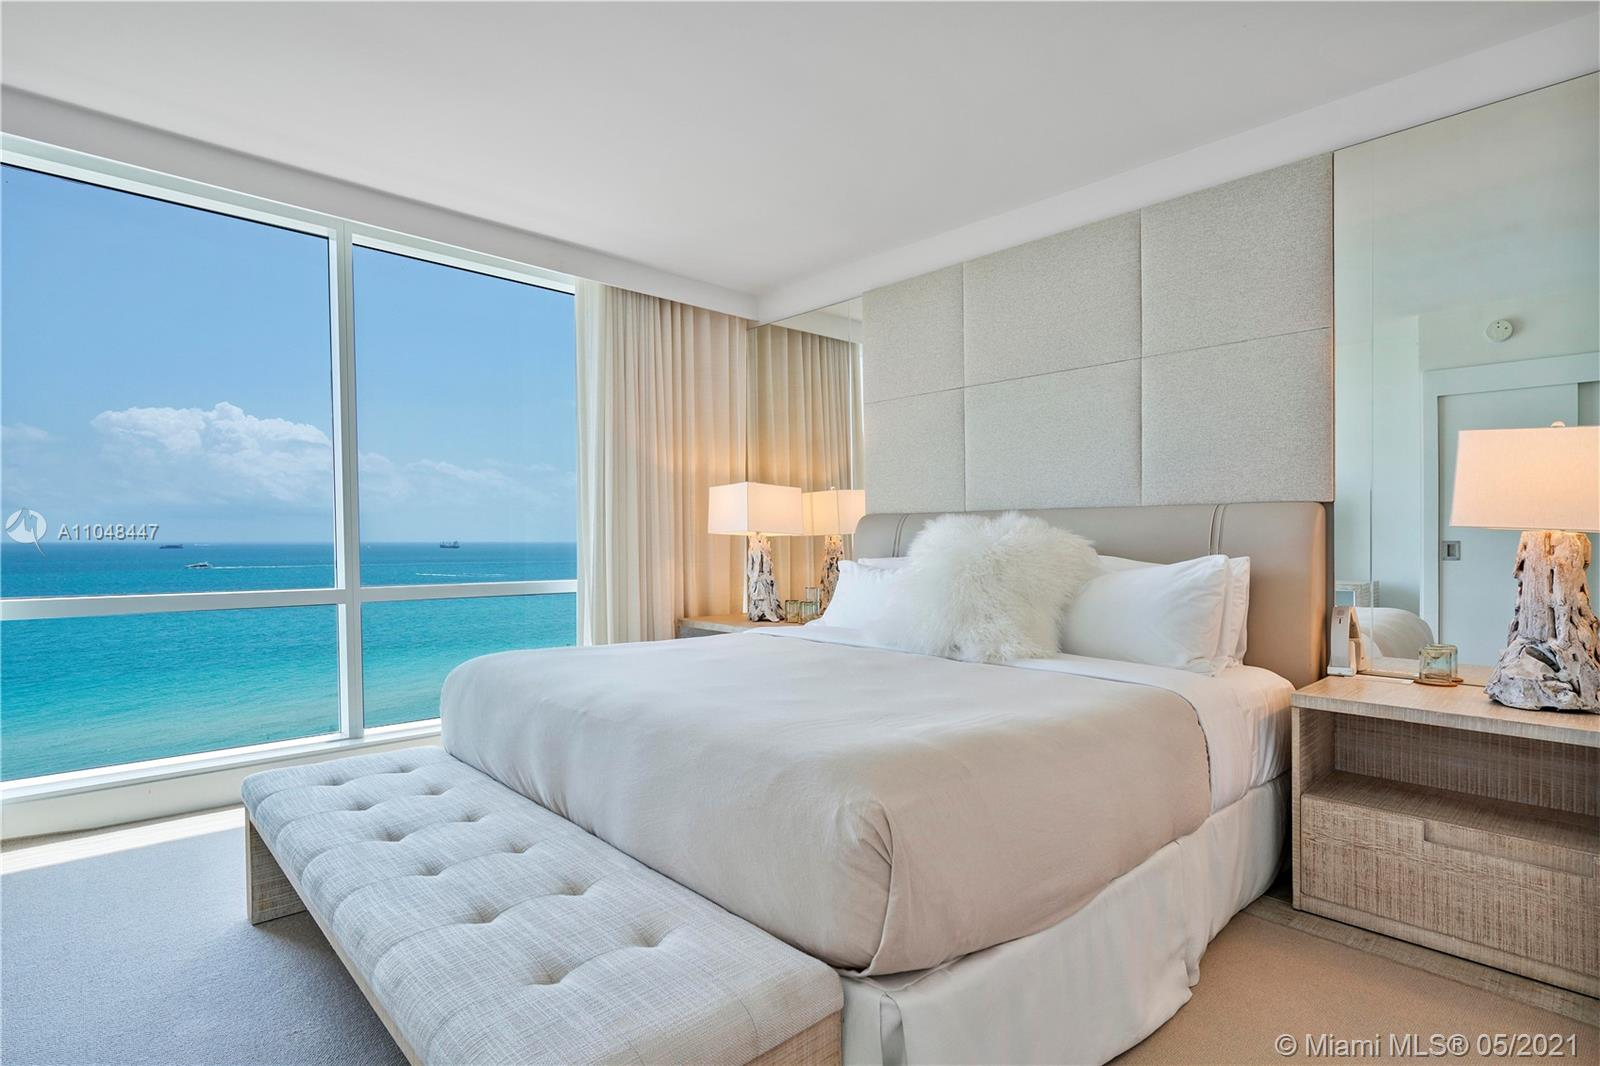 Amazing direct ocean 3 bedroom with breathtaking views of the ocean. The perfect Miami Beach spot to relax and enjoy gorgeous sunrise and sunset views. The furniture package was carefully and thoughtfully prepared by 1 Hotel with all the comforts and luxuries of a truly one-of-a-kind masterpiece. This is a turnkey condo with all the bells and whistles anyone could ask for. Enjoy resort-style living with an array of 5-star white-glove services at the property to include a 14,000 Sq. Ft. gym, spa, chauffeured Teslas, private rooftop pool & bar, 4 restaurants, 4 bars & much more. This is the nicest 2 bed in the building.     Experience luxury hotel living with extravagant 5-star white glove services - a truly opulent Miami Beach Oasis.